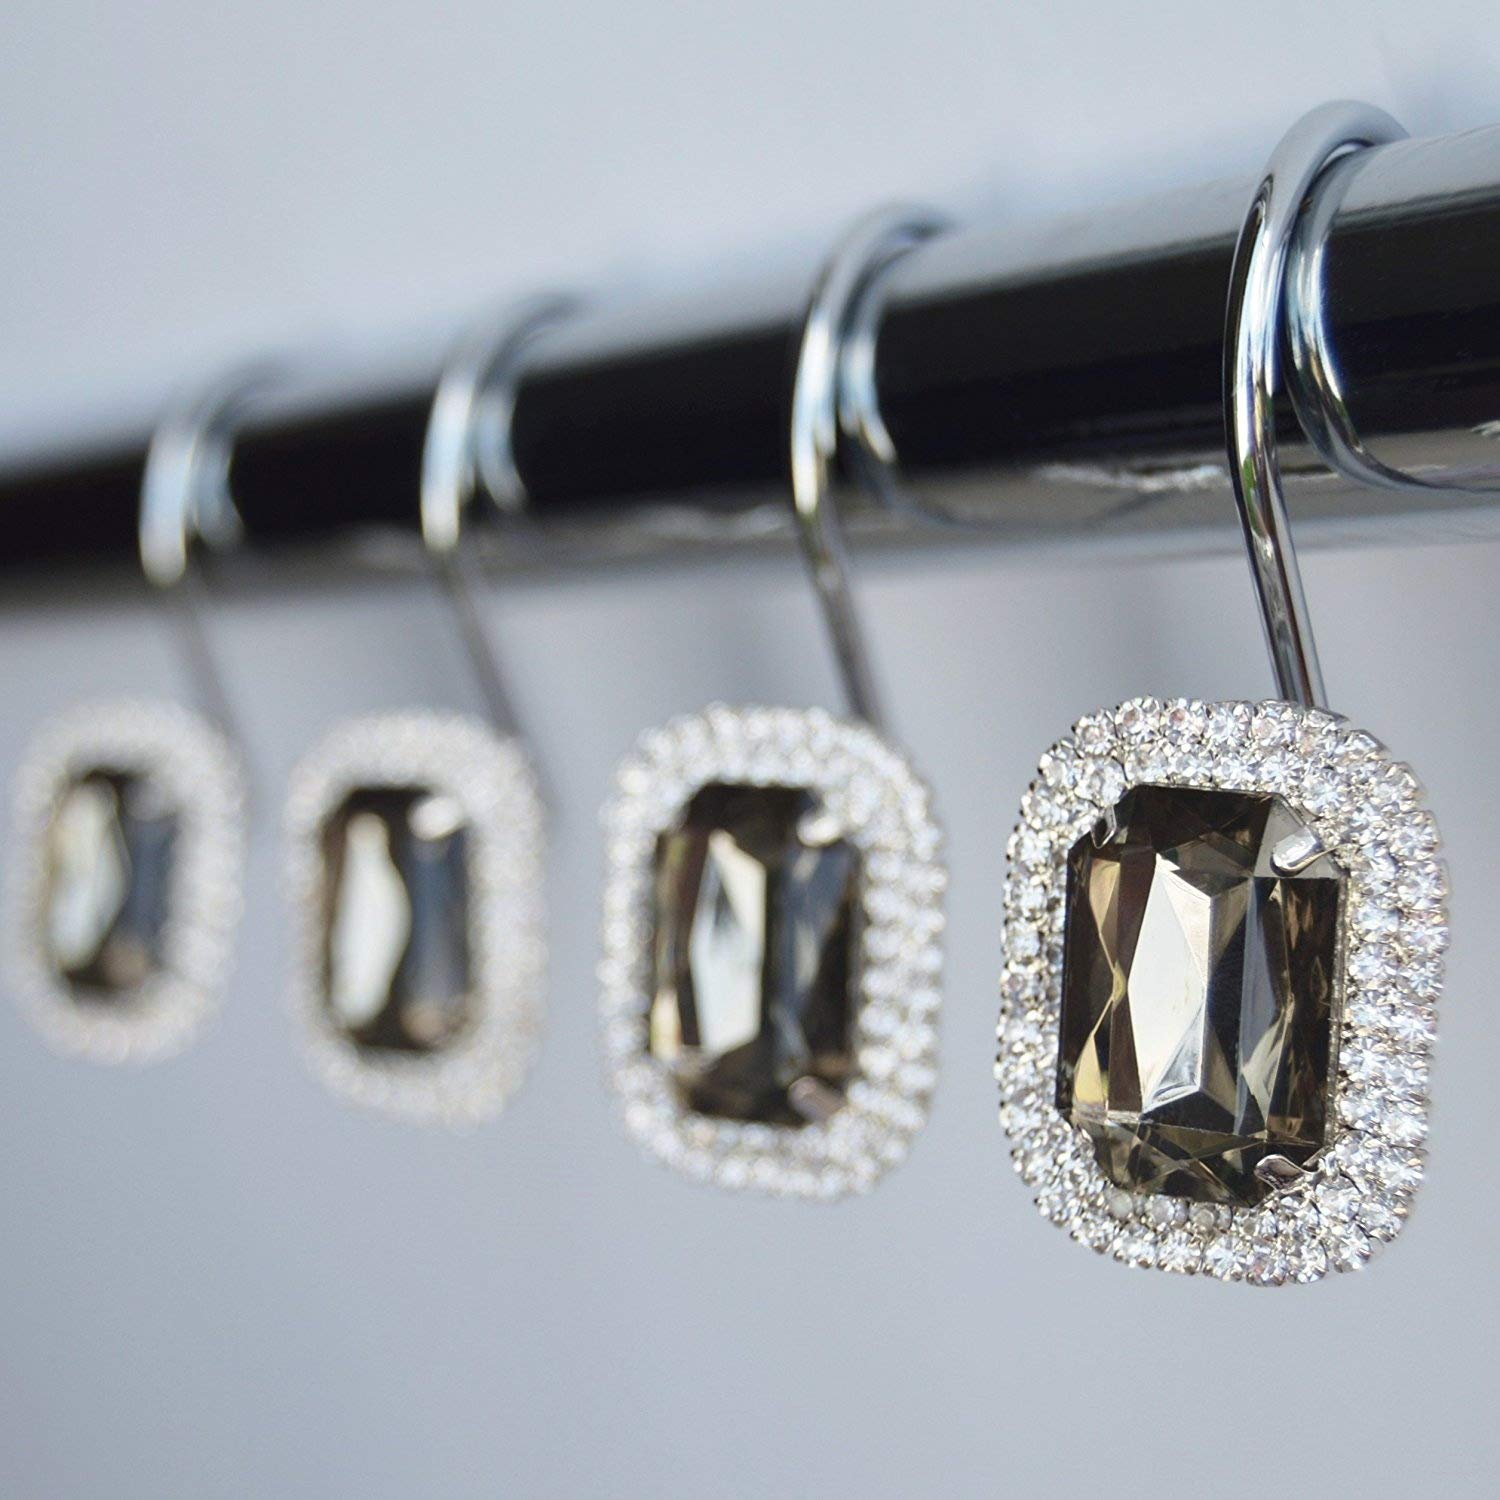 Luxurious Crystal Diamond Bling Rhinestones Bathroom Shower Curtain Hooks Rings